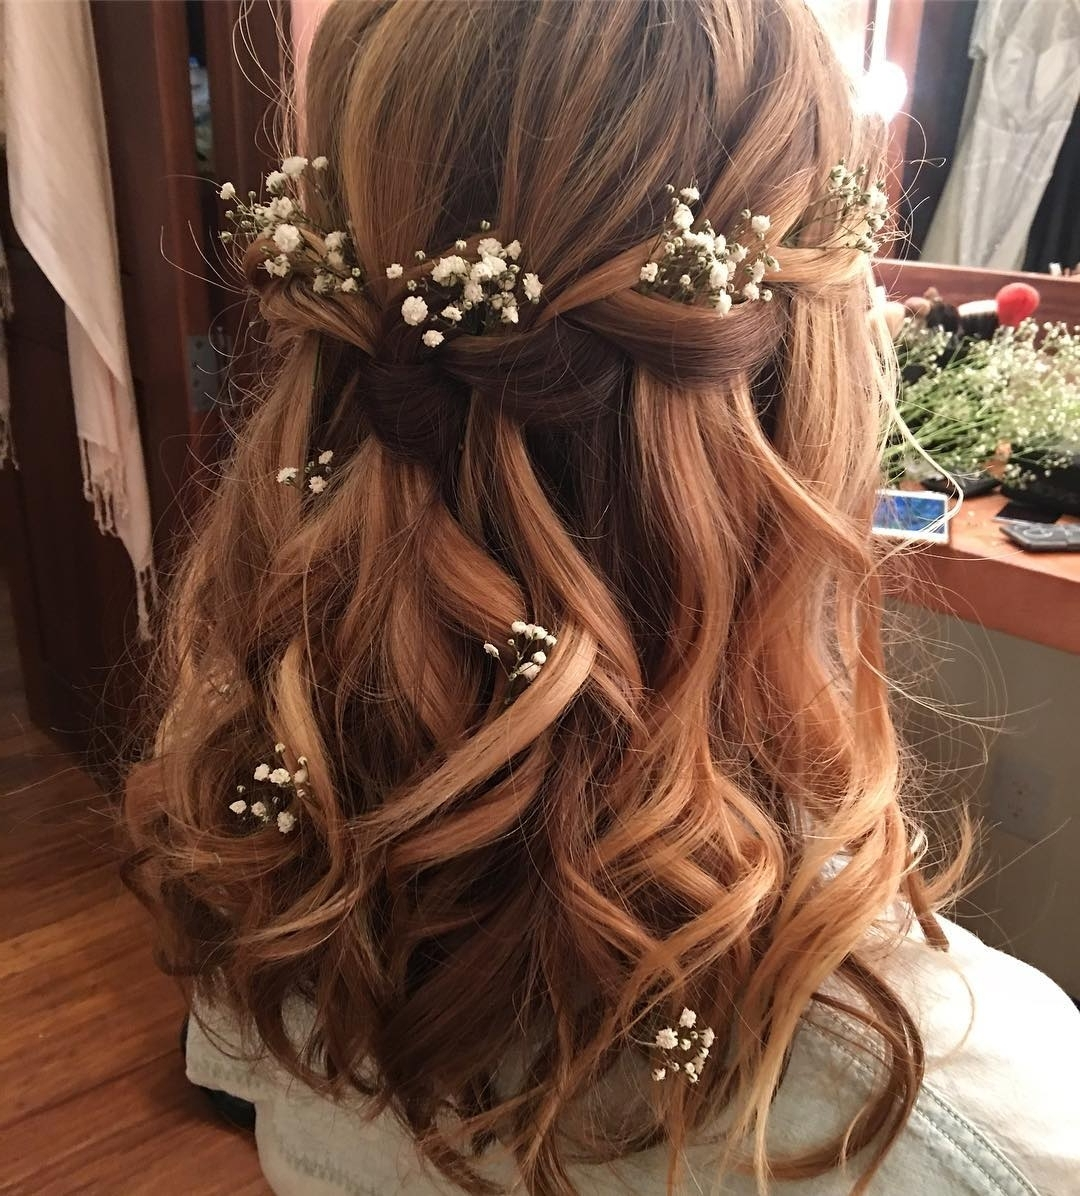 10 Lavish Wedding Hairstyles For Long Hair – Wedding Hairstyle Ideas Throughout Newest Wedding Hairstyles For Long Brown Hair (View 1 of 15)